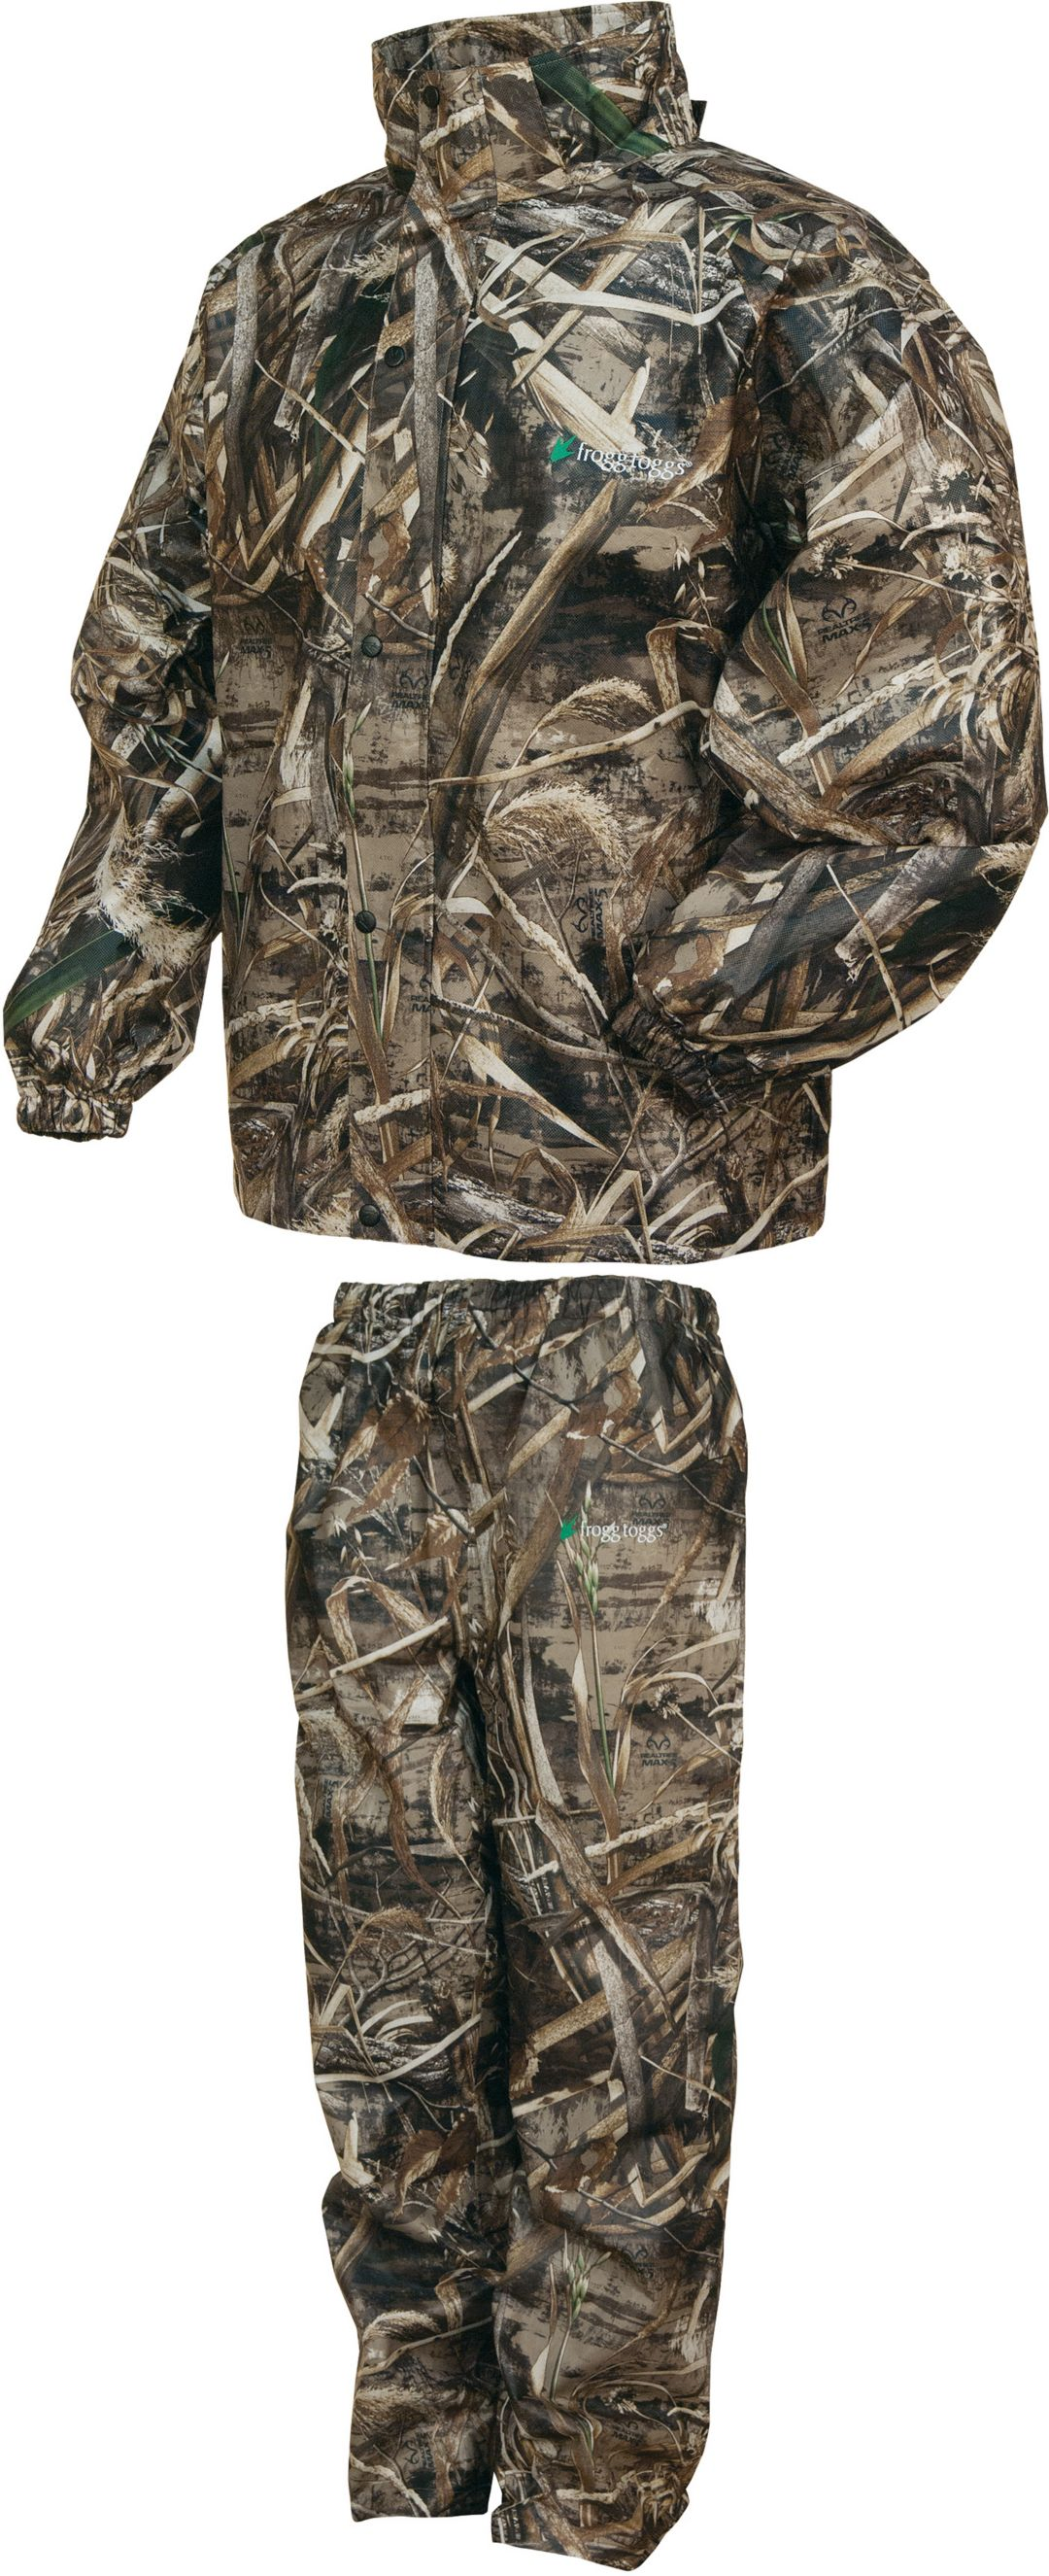 87731d1e5c6ae frogg toggs Men's All Sport Camo Rain Suit | DICK'S Sporting Goods